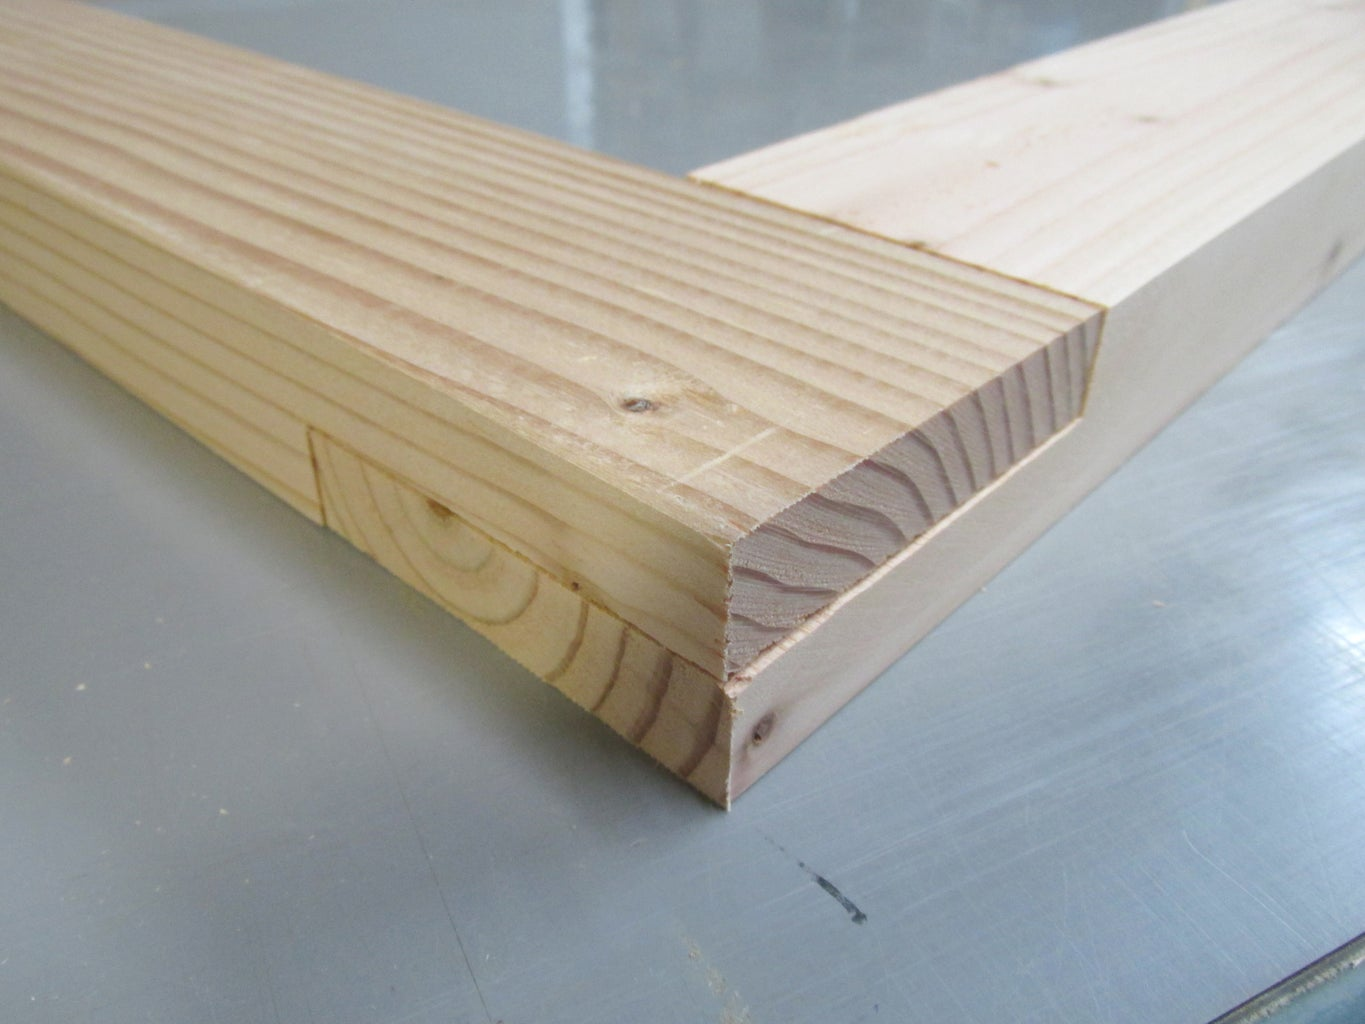 Building the 2X4 Frame: Cutting Half Lap Joints